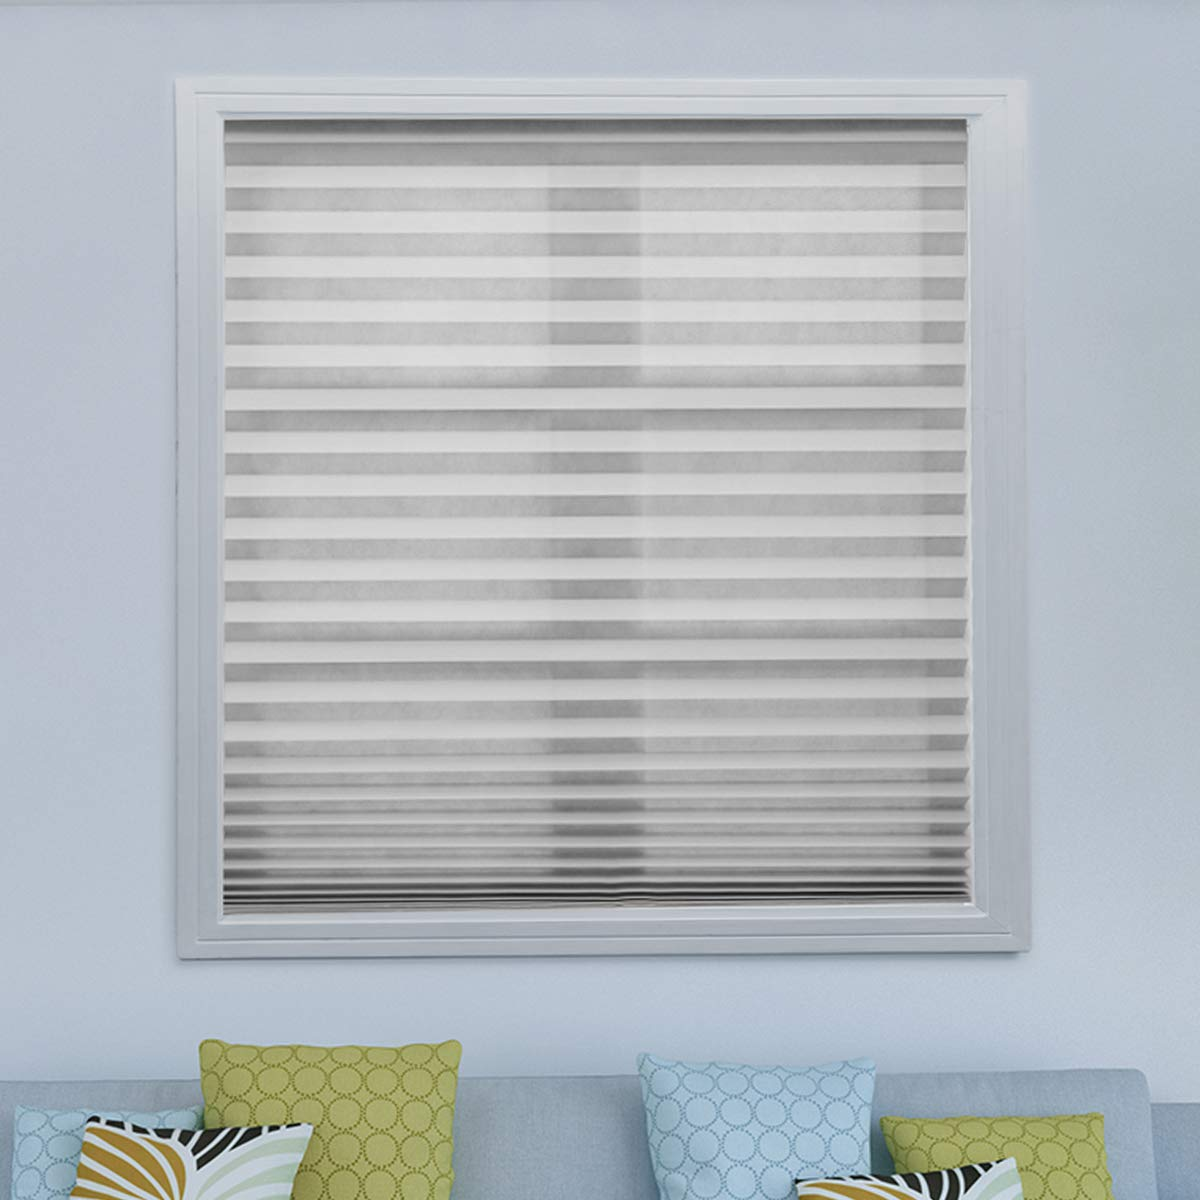 Acholo 6 Pack Grey Cordless Pleated Fabric Shades Room Darkening Window Shades Blinds Trim-at-Home 36''x 72''